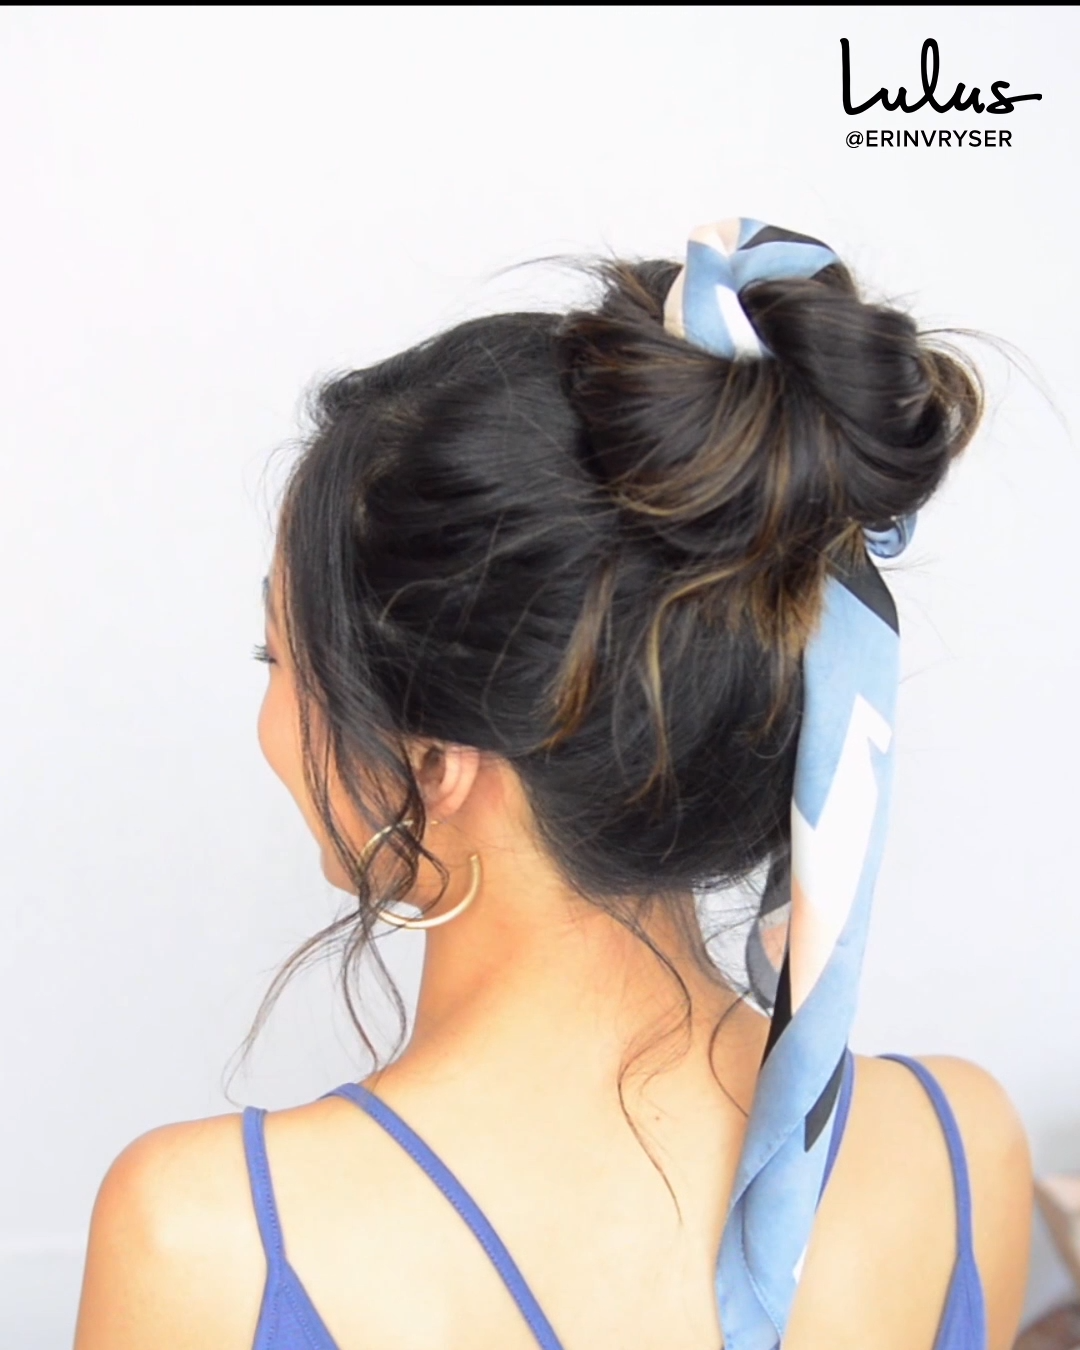 Need a Playful, Effortless Hairstyle? Try a Messy Bun with a Hair Scarf (It's Super Easy!)